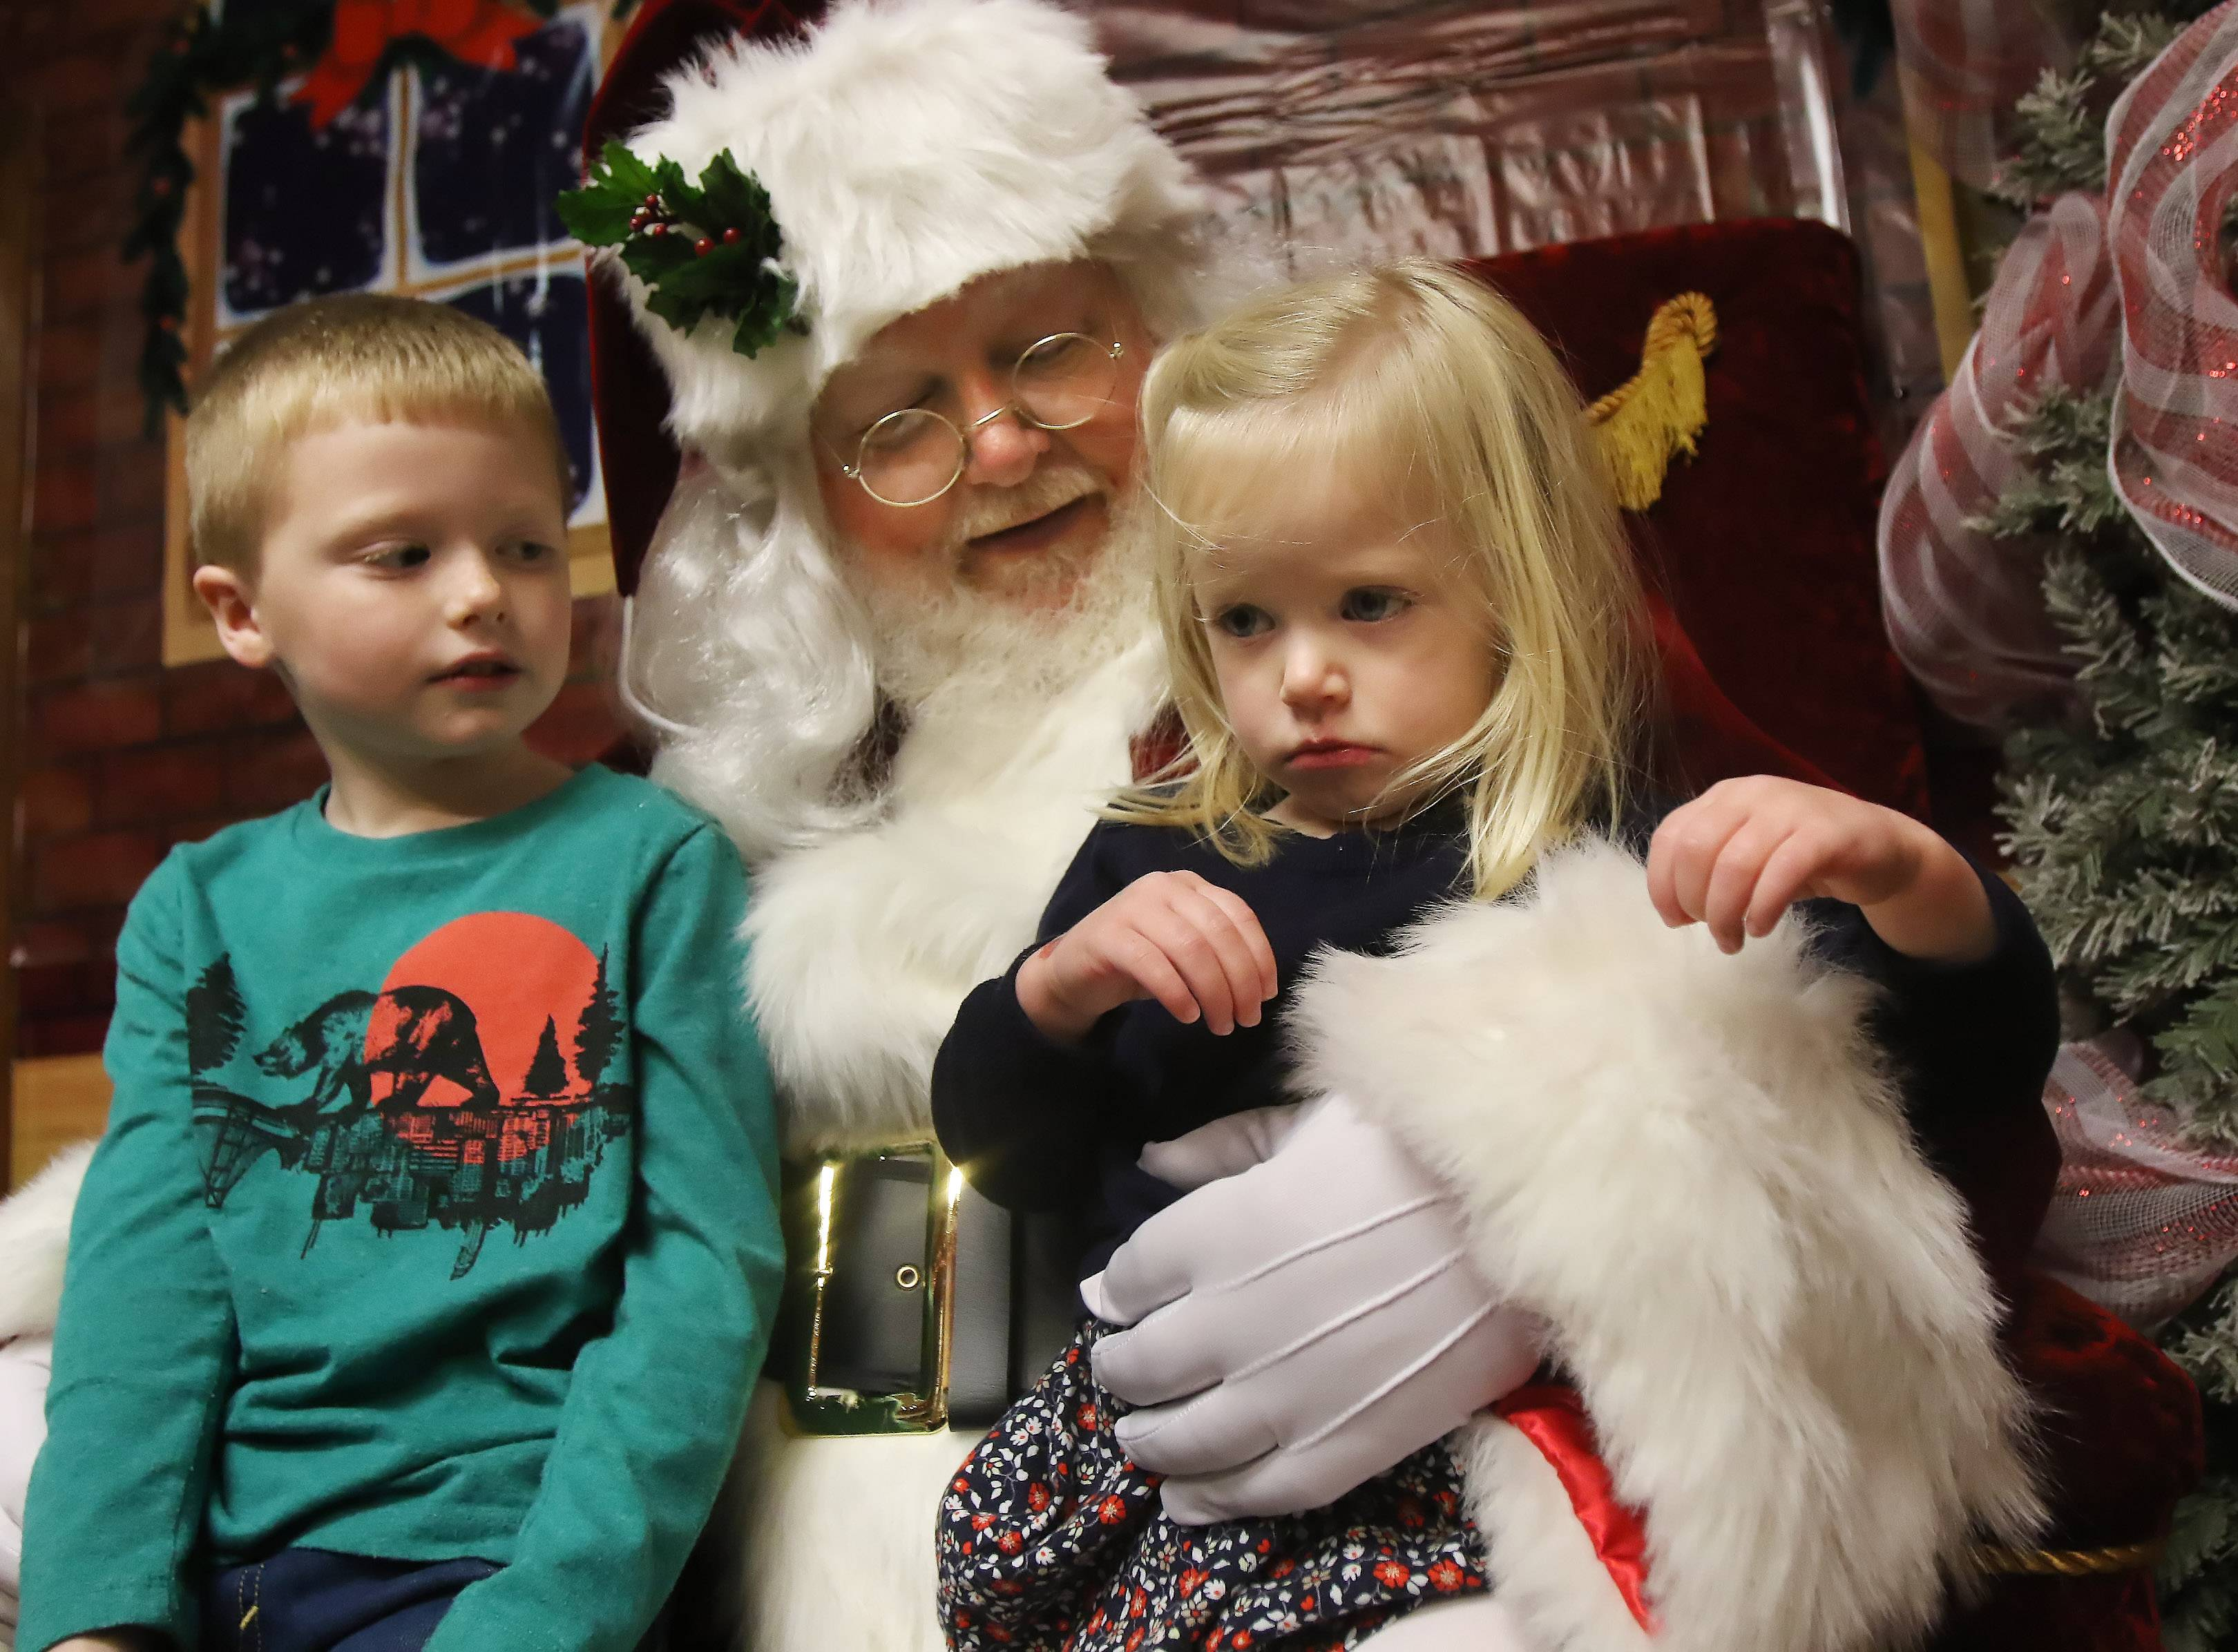 "Gilbert R. Boucher II/gboucher@dailyherald.comTwo-year-old Clara Osowski of Mount Prospect is unhappy as she sits on Santa's lap with her brother, Caden, 5, at Santa's Frozen Village in downtown Antioch Sunday. Children met with Santa Claus as well as Elsa and Olaf, characters from the movie ""Frozen,"" while touring the winter wonderland. Santa is Alan Bednar of Antioch who has been playing him in the village for 29 years."